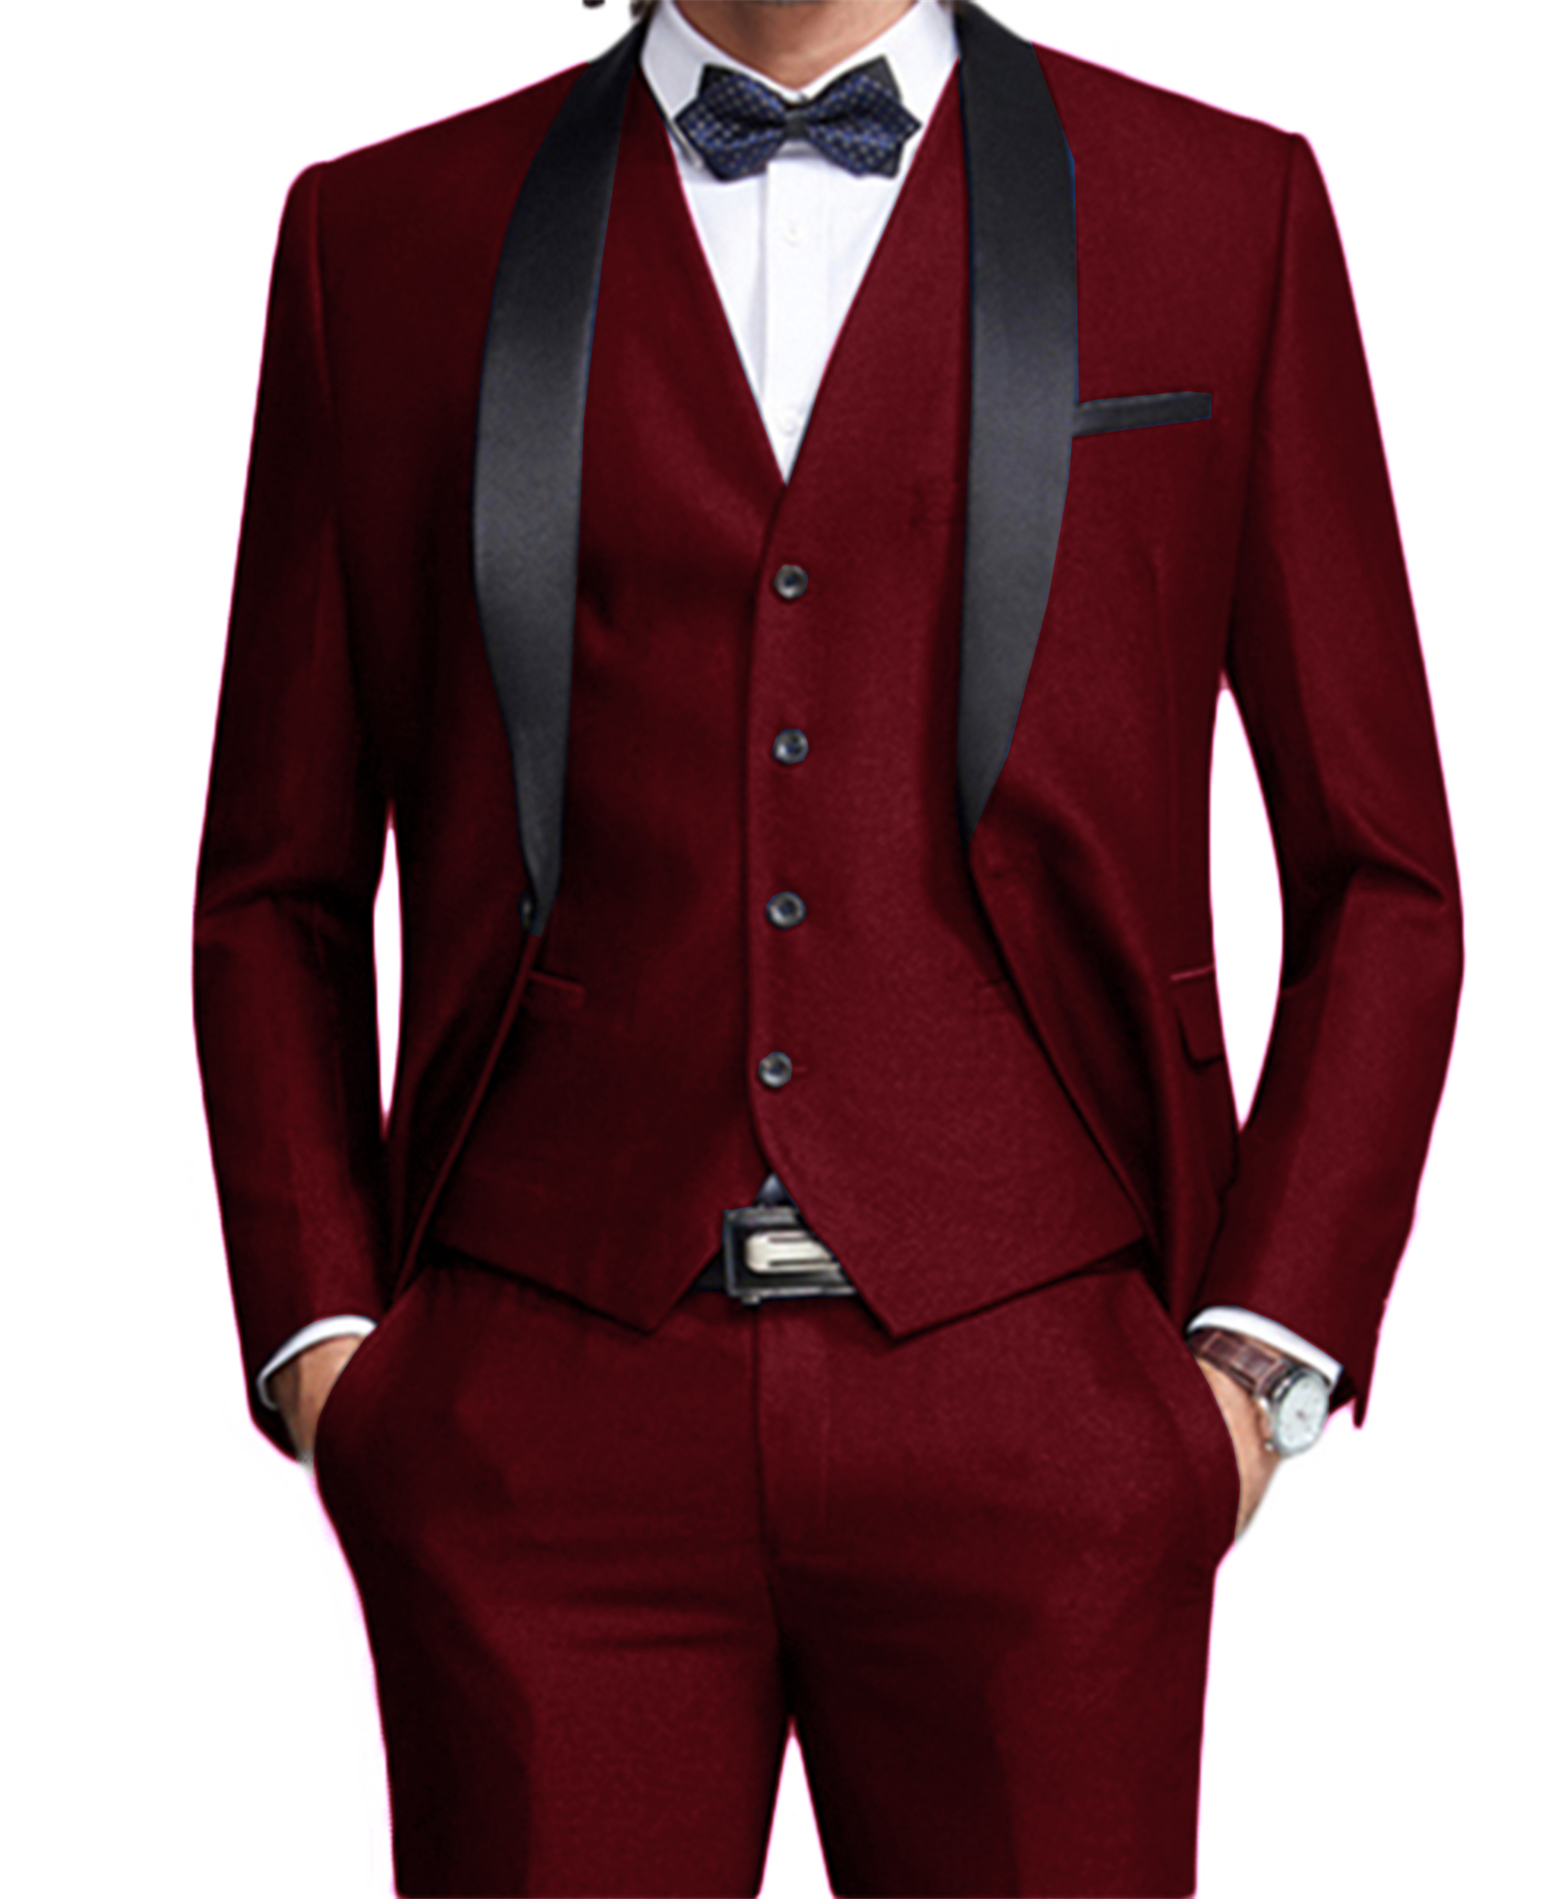 Mens Classic 3 Pieces Burgundy Red Tailored Wedding Tux Gents Formal Slim Fit Business Suit